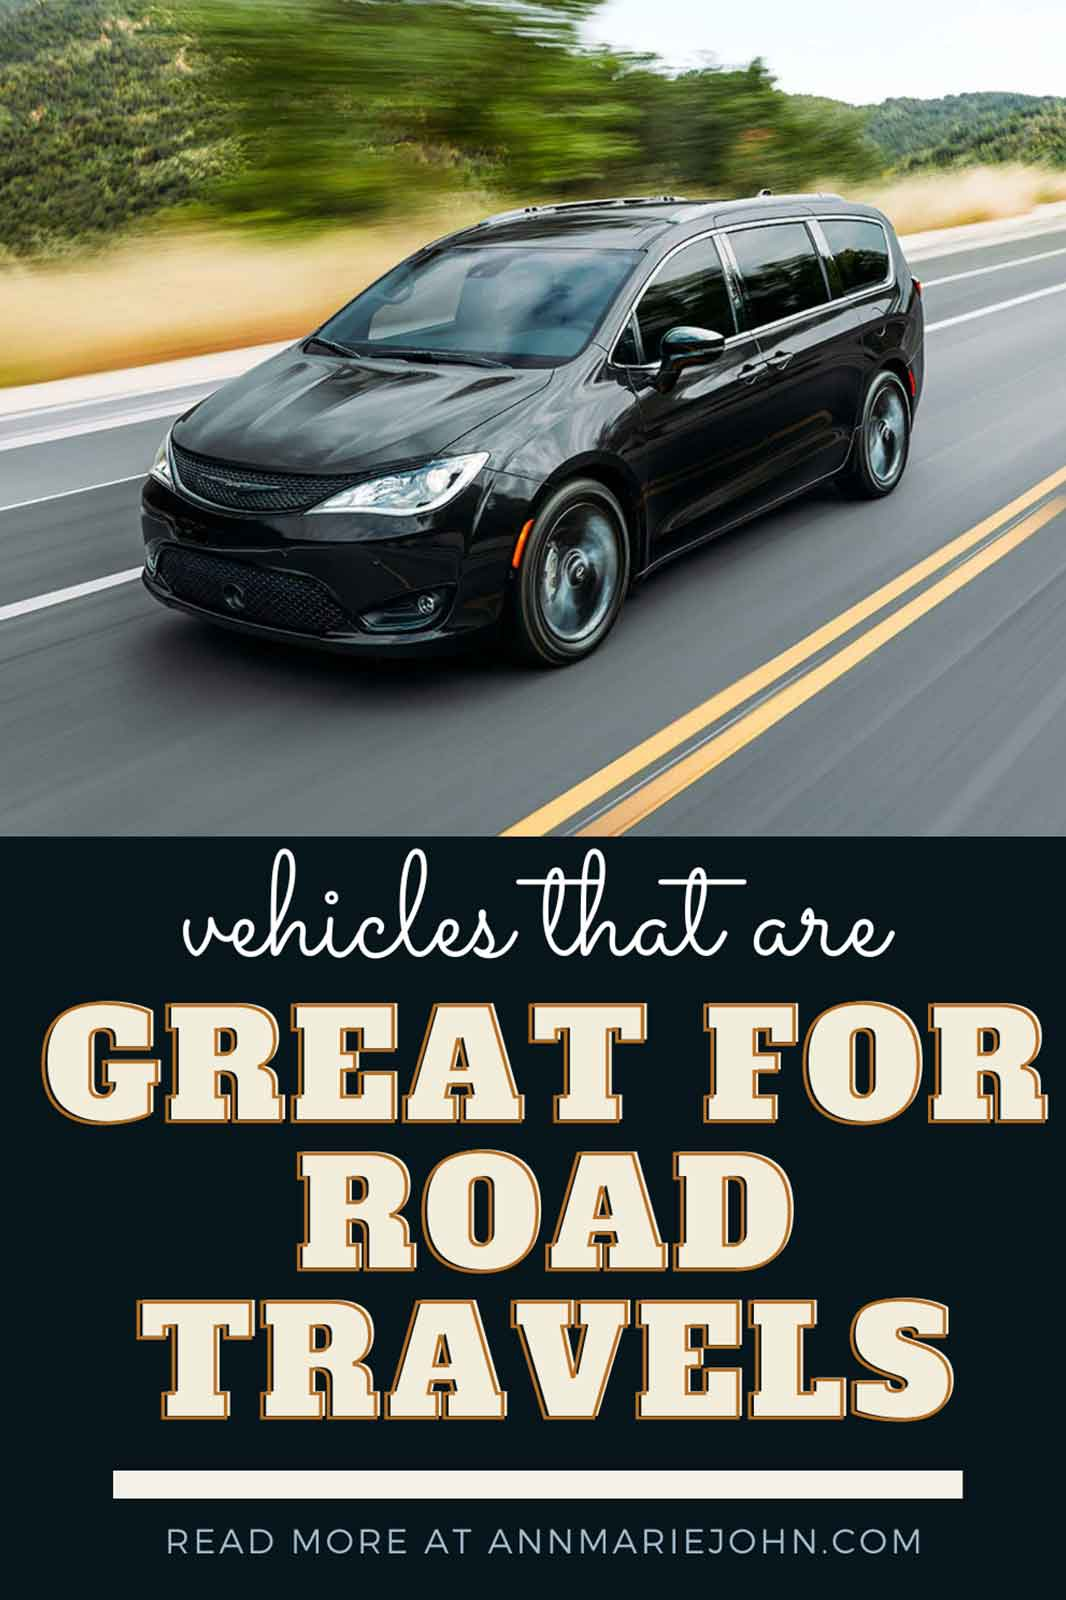 Vehicles That are Great for Road Travels